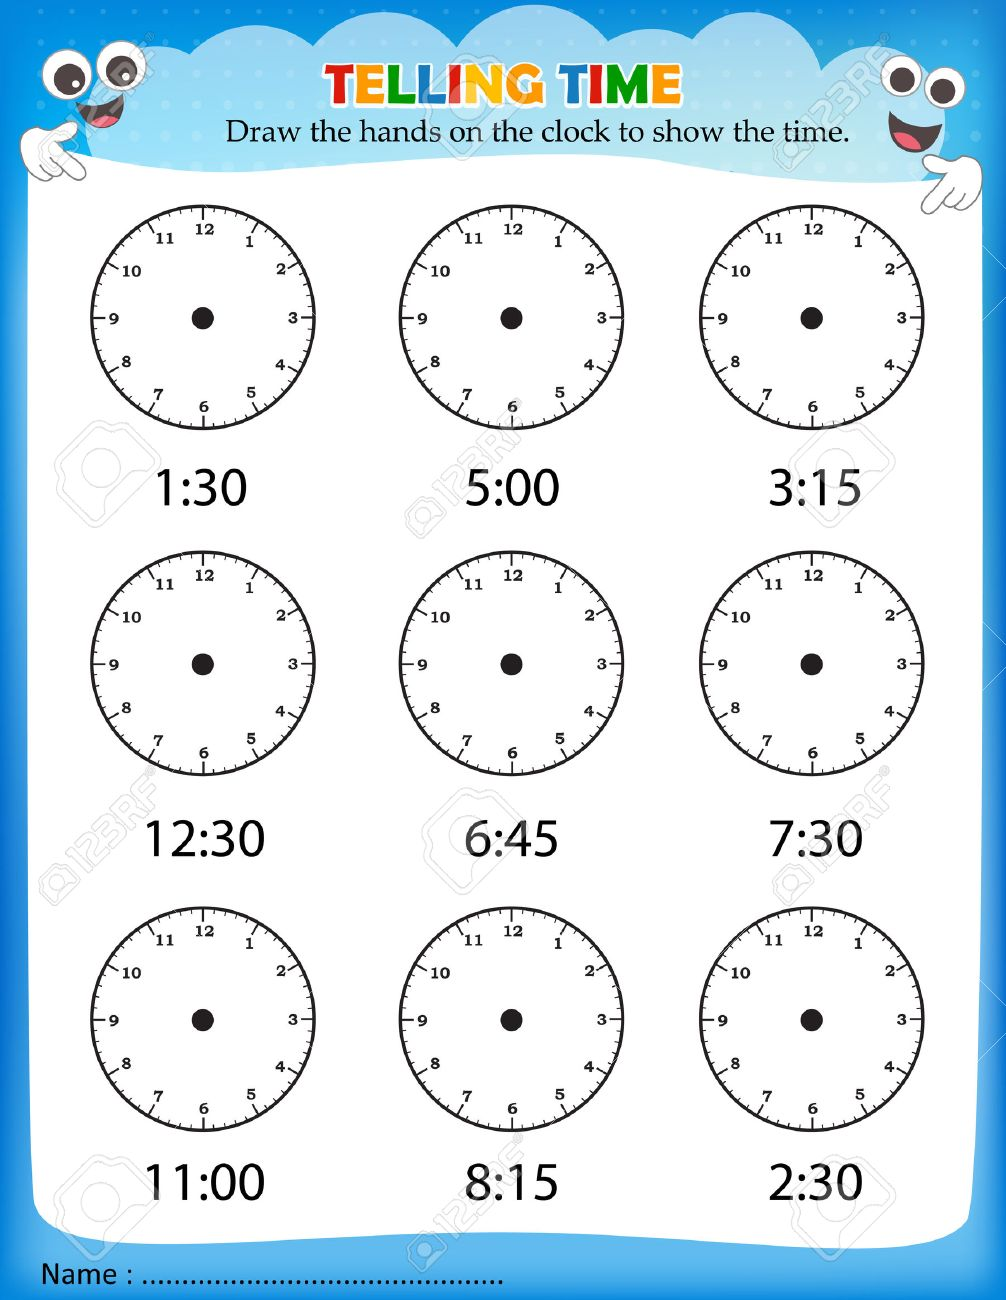 hight resolution of Telling Time Worksheet For Pre School Kids To Identify The Time... Royalty  Free Cliparts